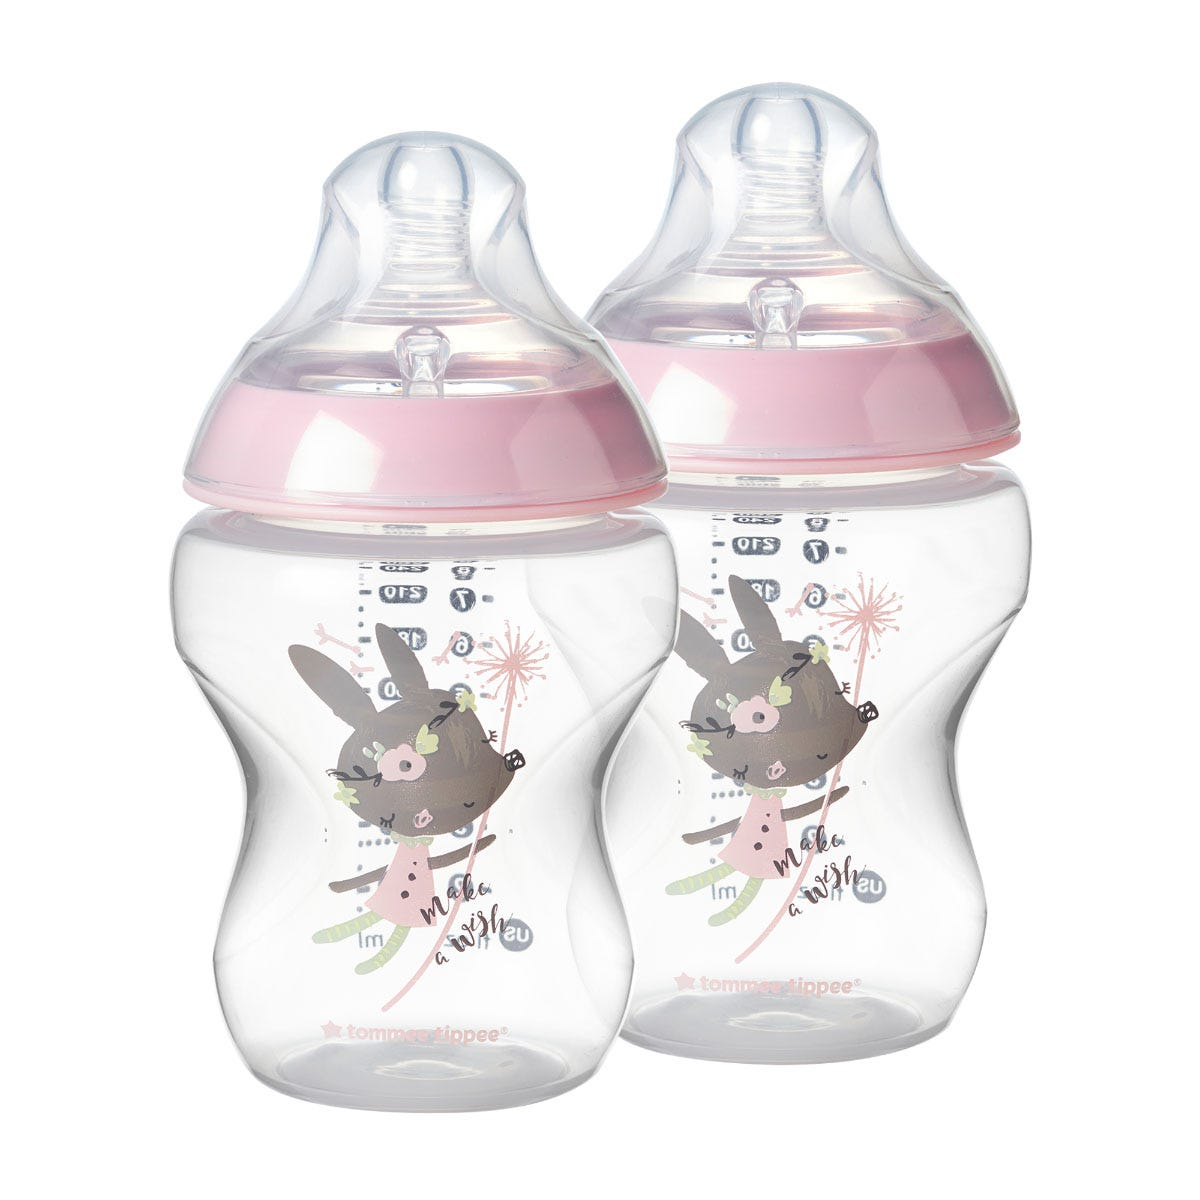 2-clear-closer-to-nature-baby-bottles-with-a-pink-rim-to-secure-the-nipple-and-a-graphic-bunny-design-and-the-words-make-a-wish